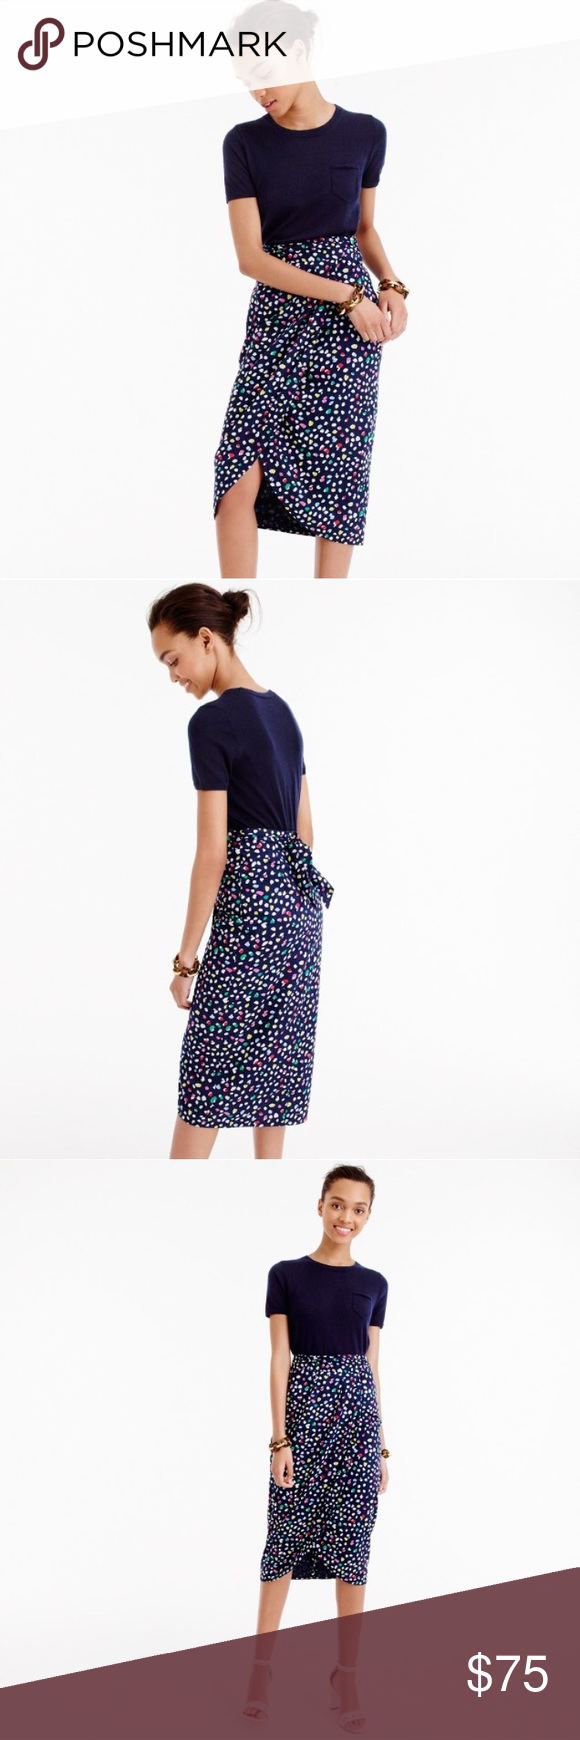 J. Crew Tulip Skirt in Ratti Happy Cat Print Size6 NWT J.Crew Tulip Skirt in Ratti Happy Cat Print Size 6. No trades. Comes from a smoke free pet free home. J. Crew Skirts Midi